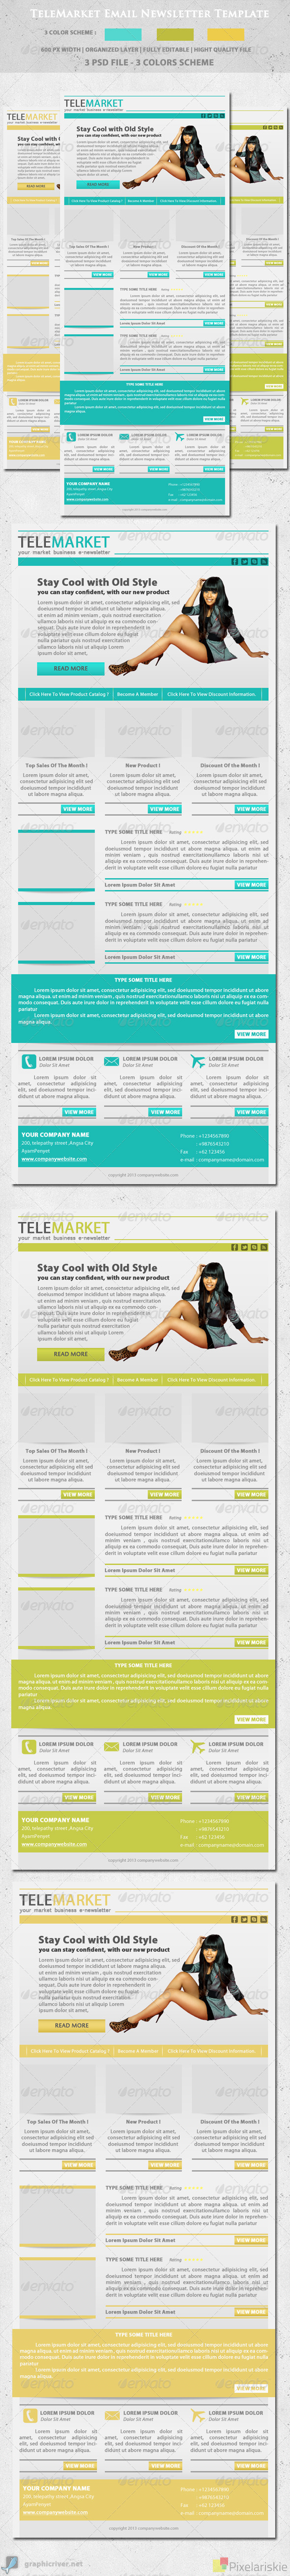 Telemarket Email Newsletter Template - E-newsletters Web Elements